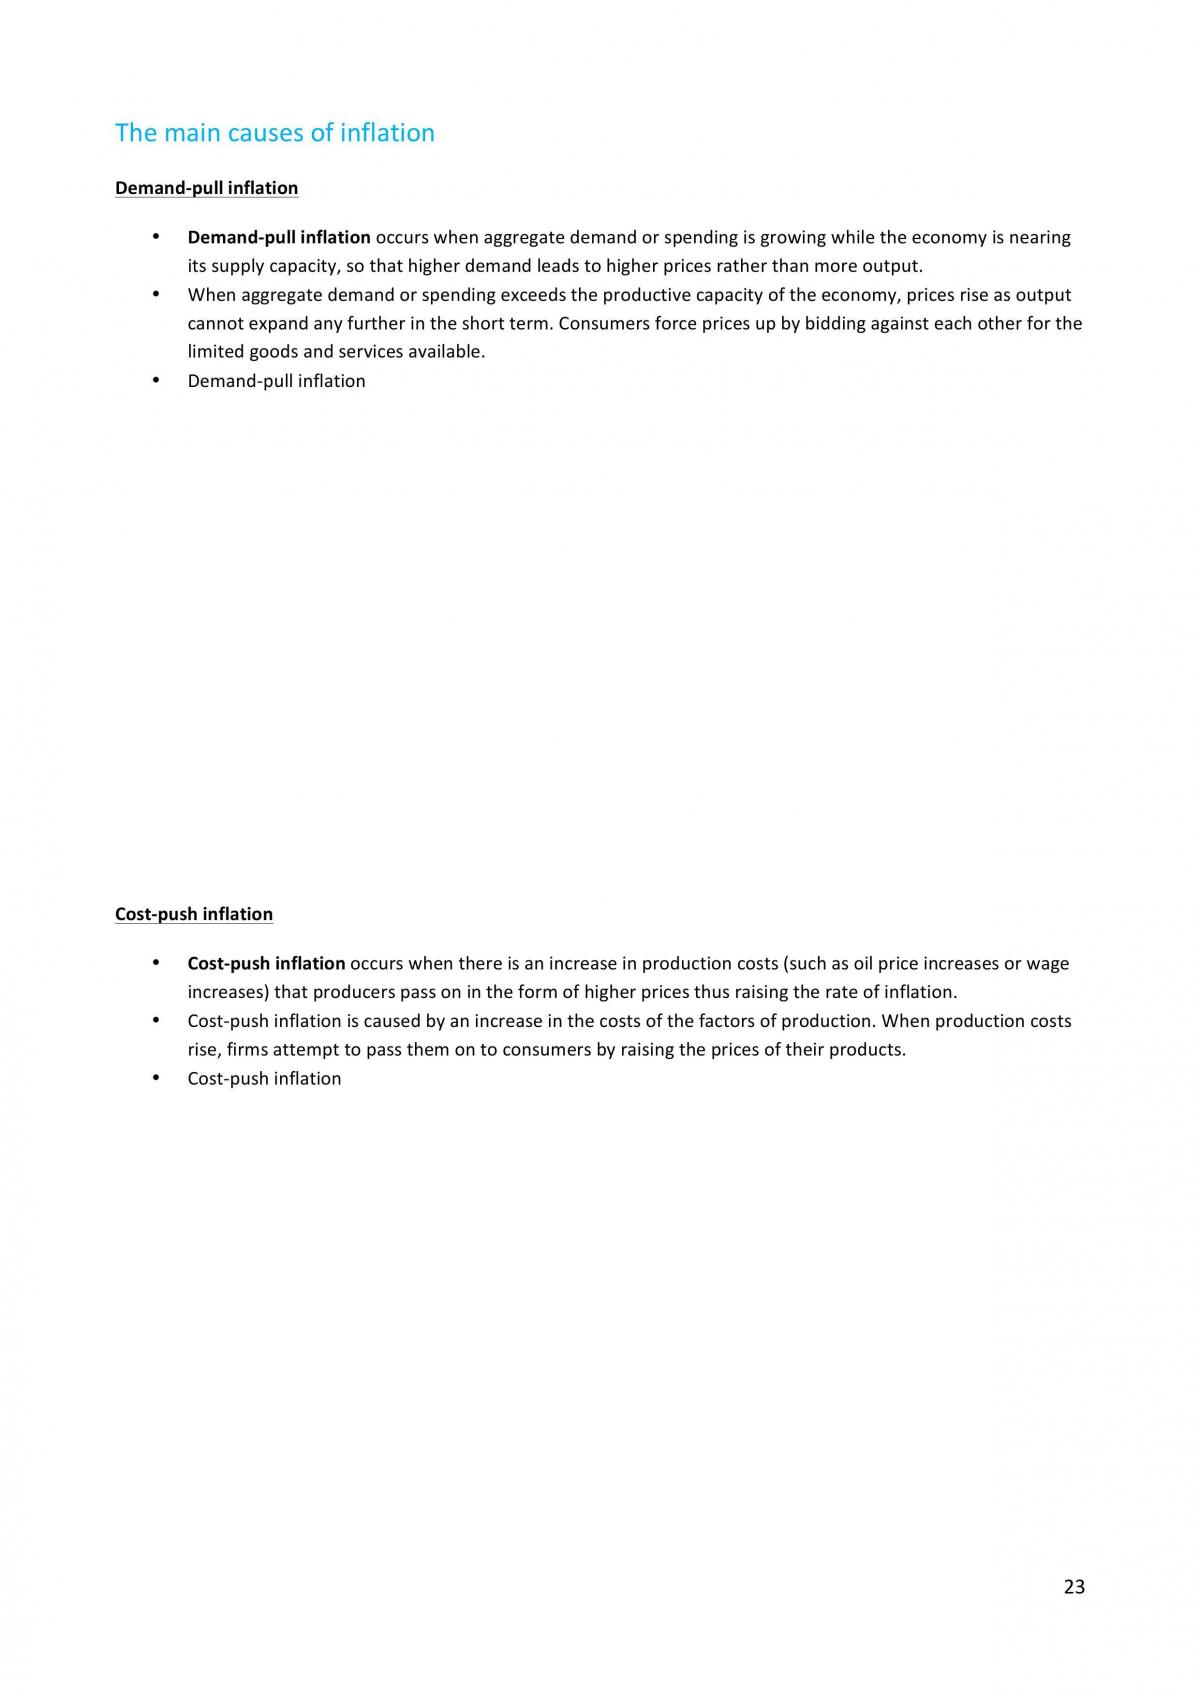 HSC Topic 3 Economic Issues - Page 23